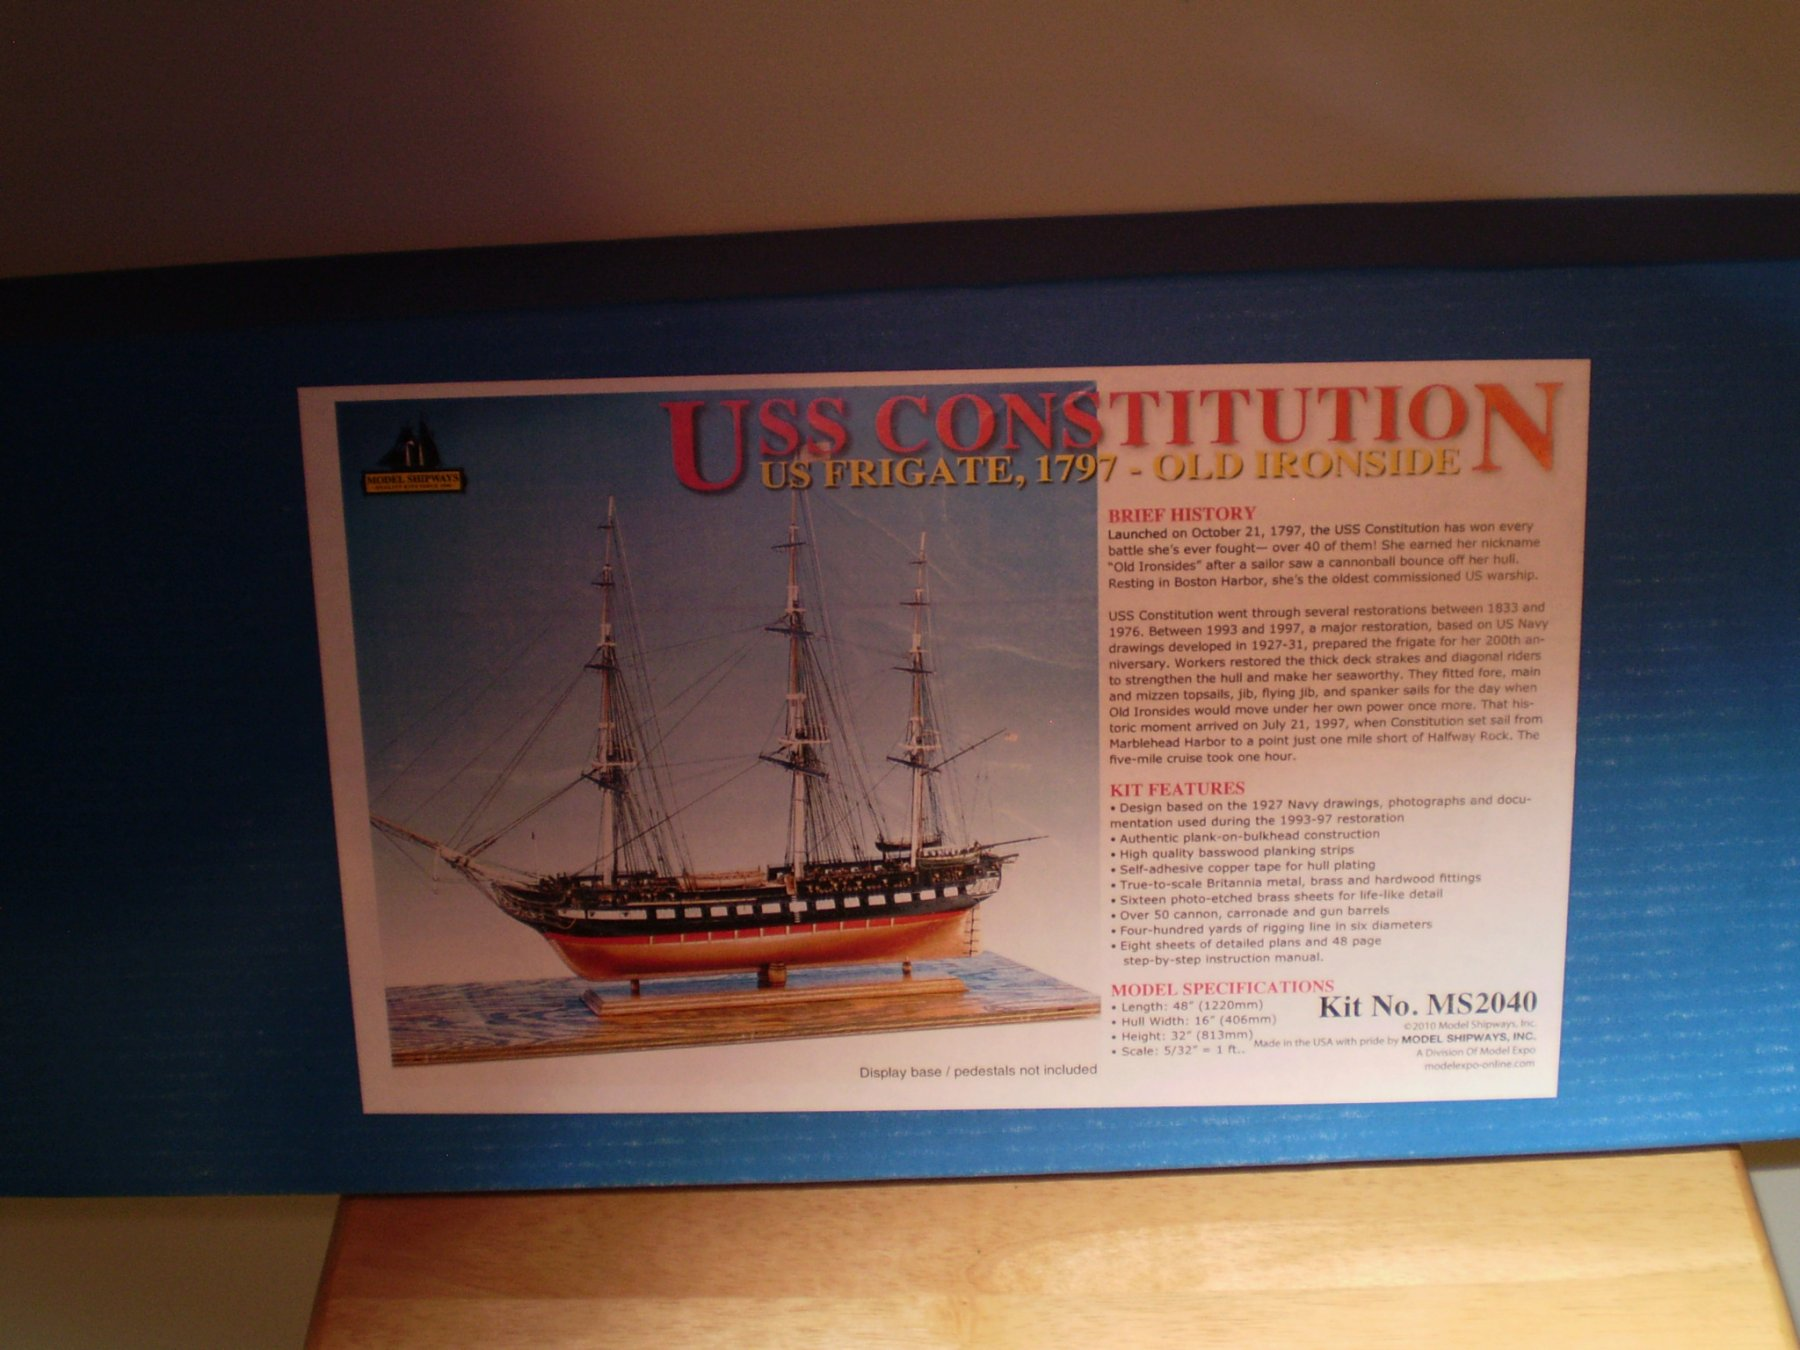 USS Constitution by maturin52 - Build Logs for SHIP MODEL KITS